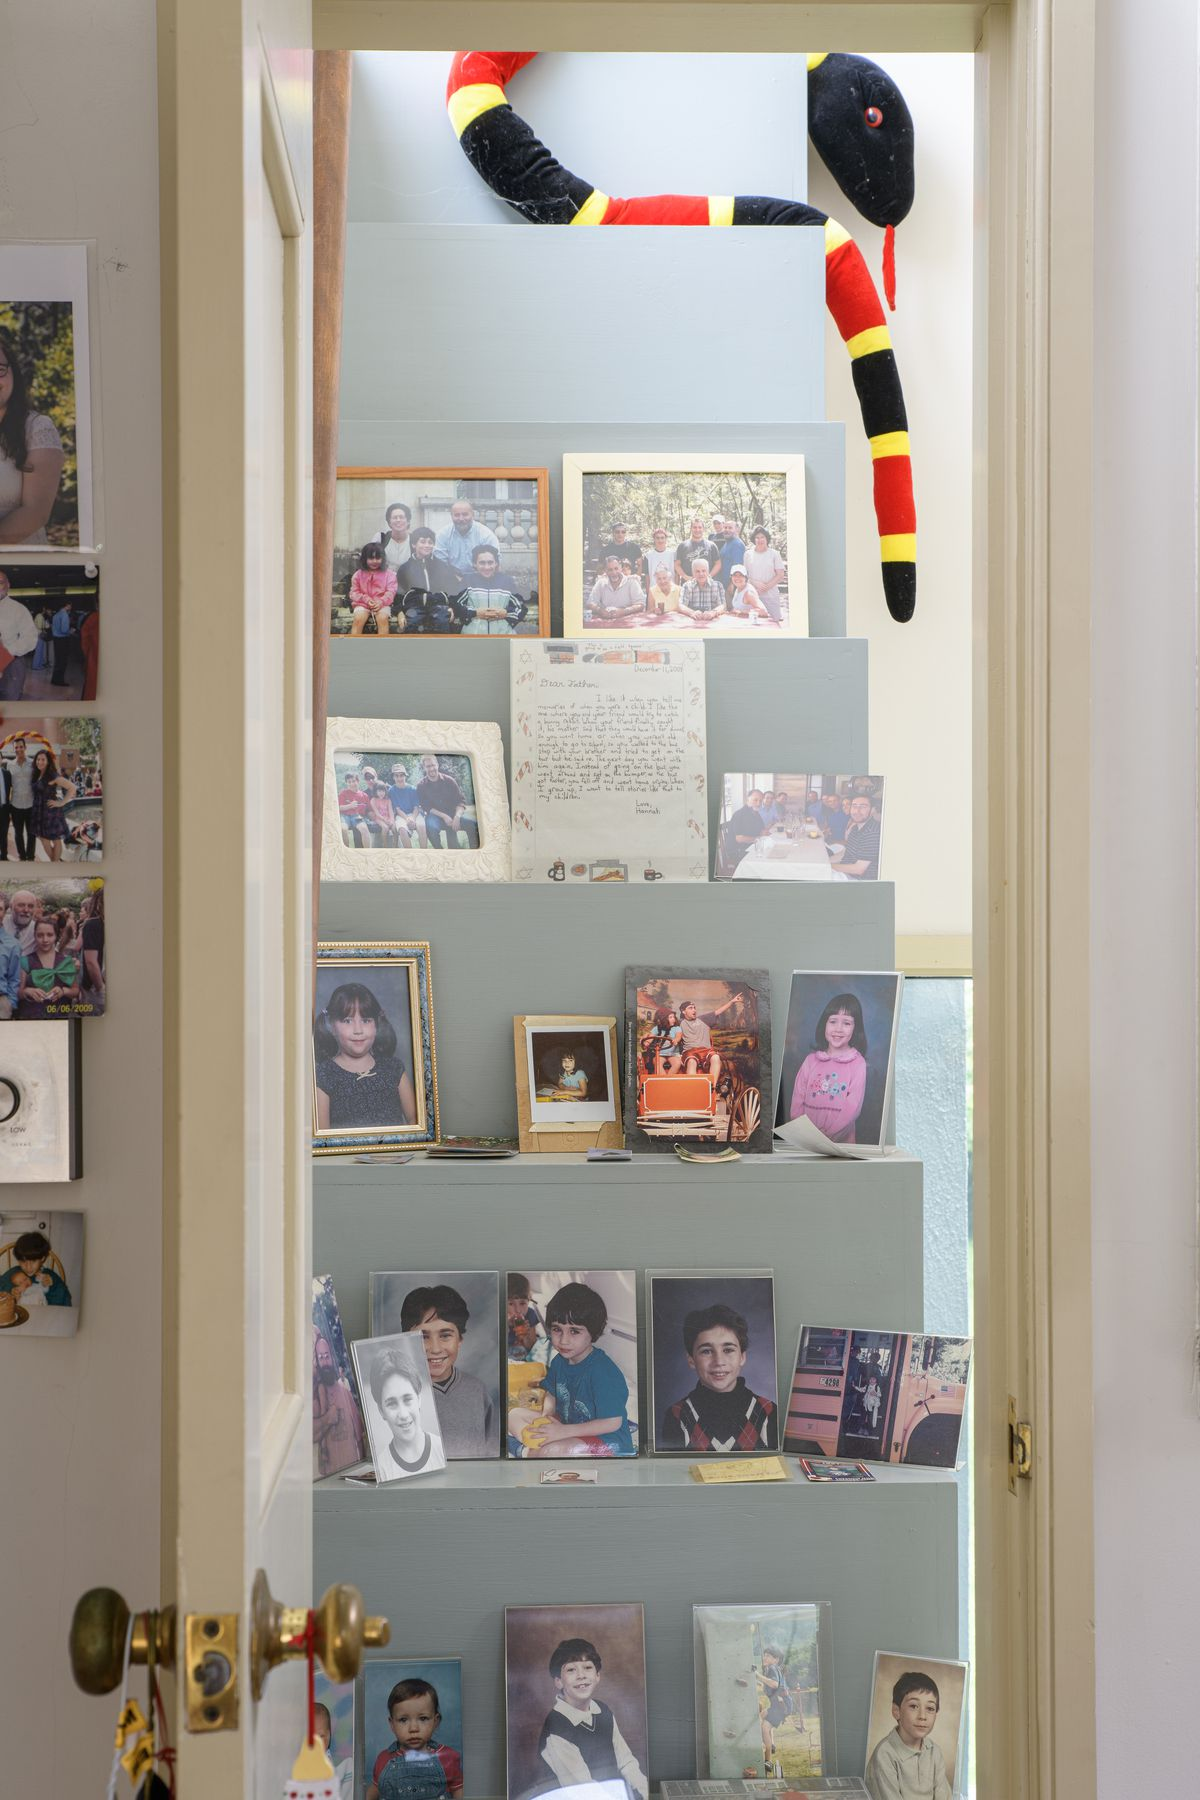 A doorway that opens to a staircase. On the stairs are various framed photos, art, and letters. There is a stuffed toy snake on the top of the stairs.